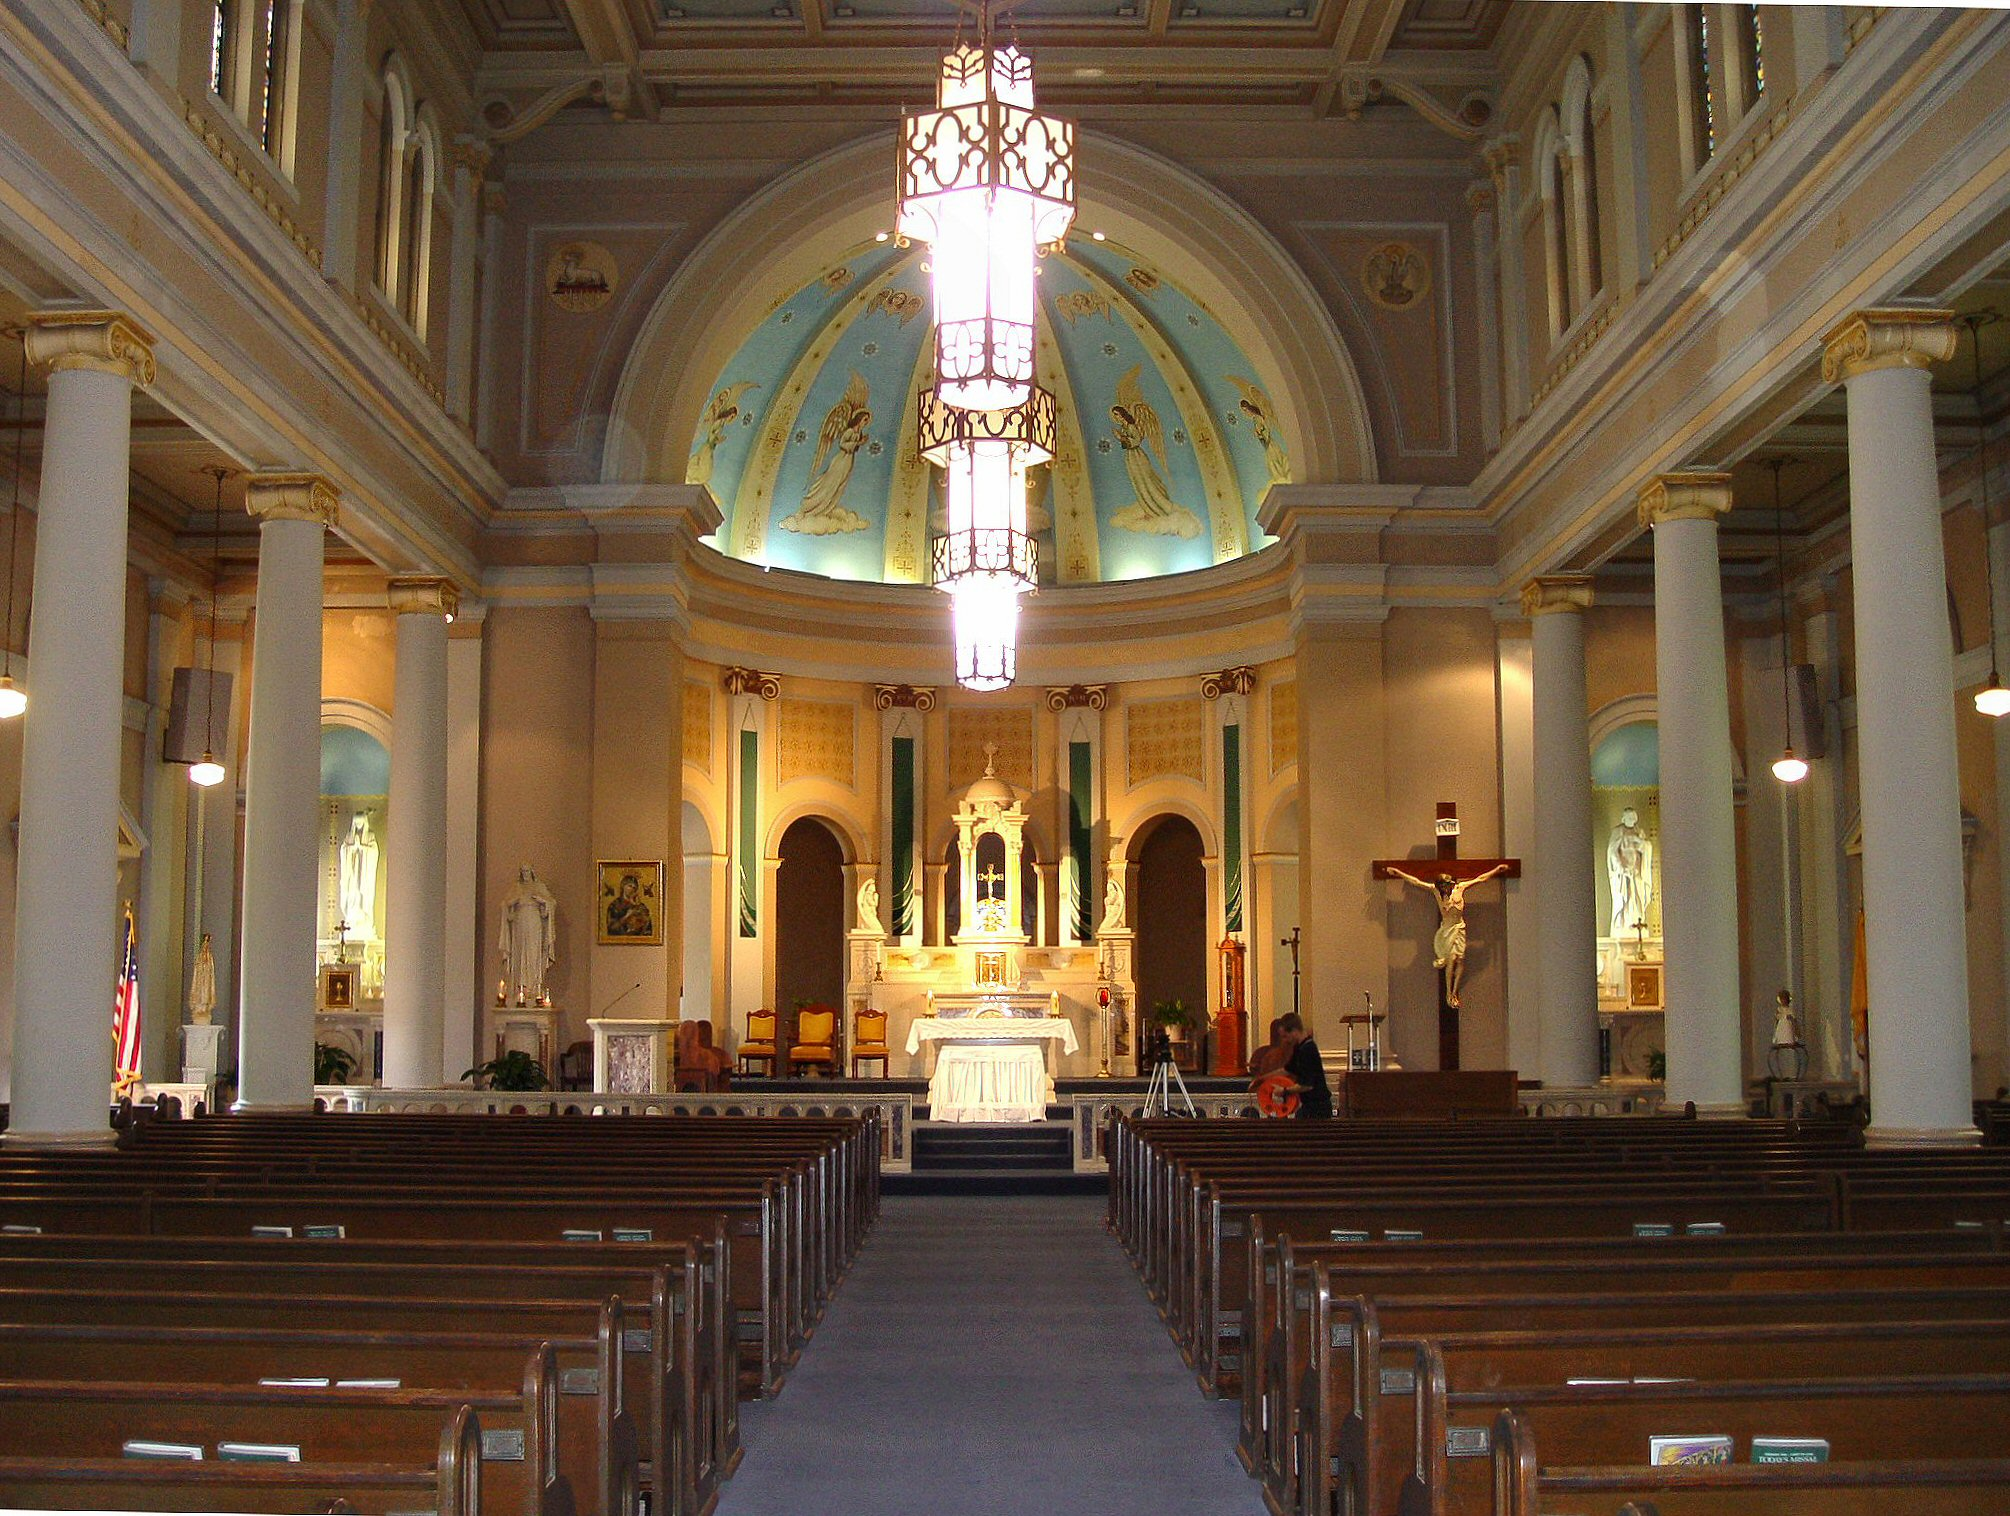 View inside the church.